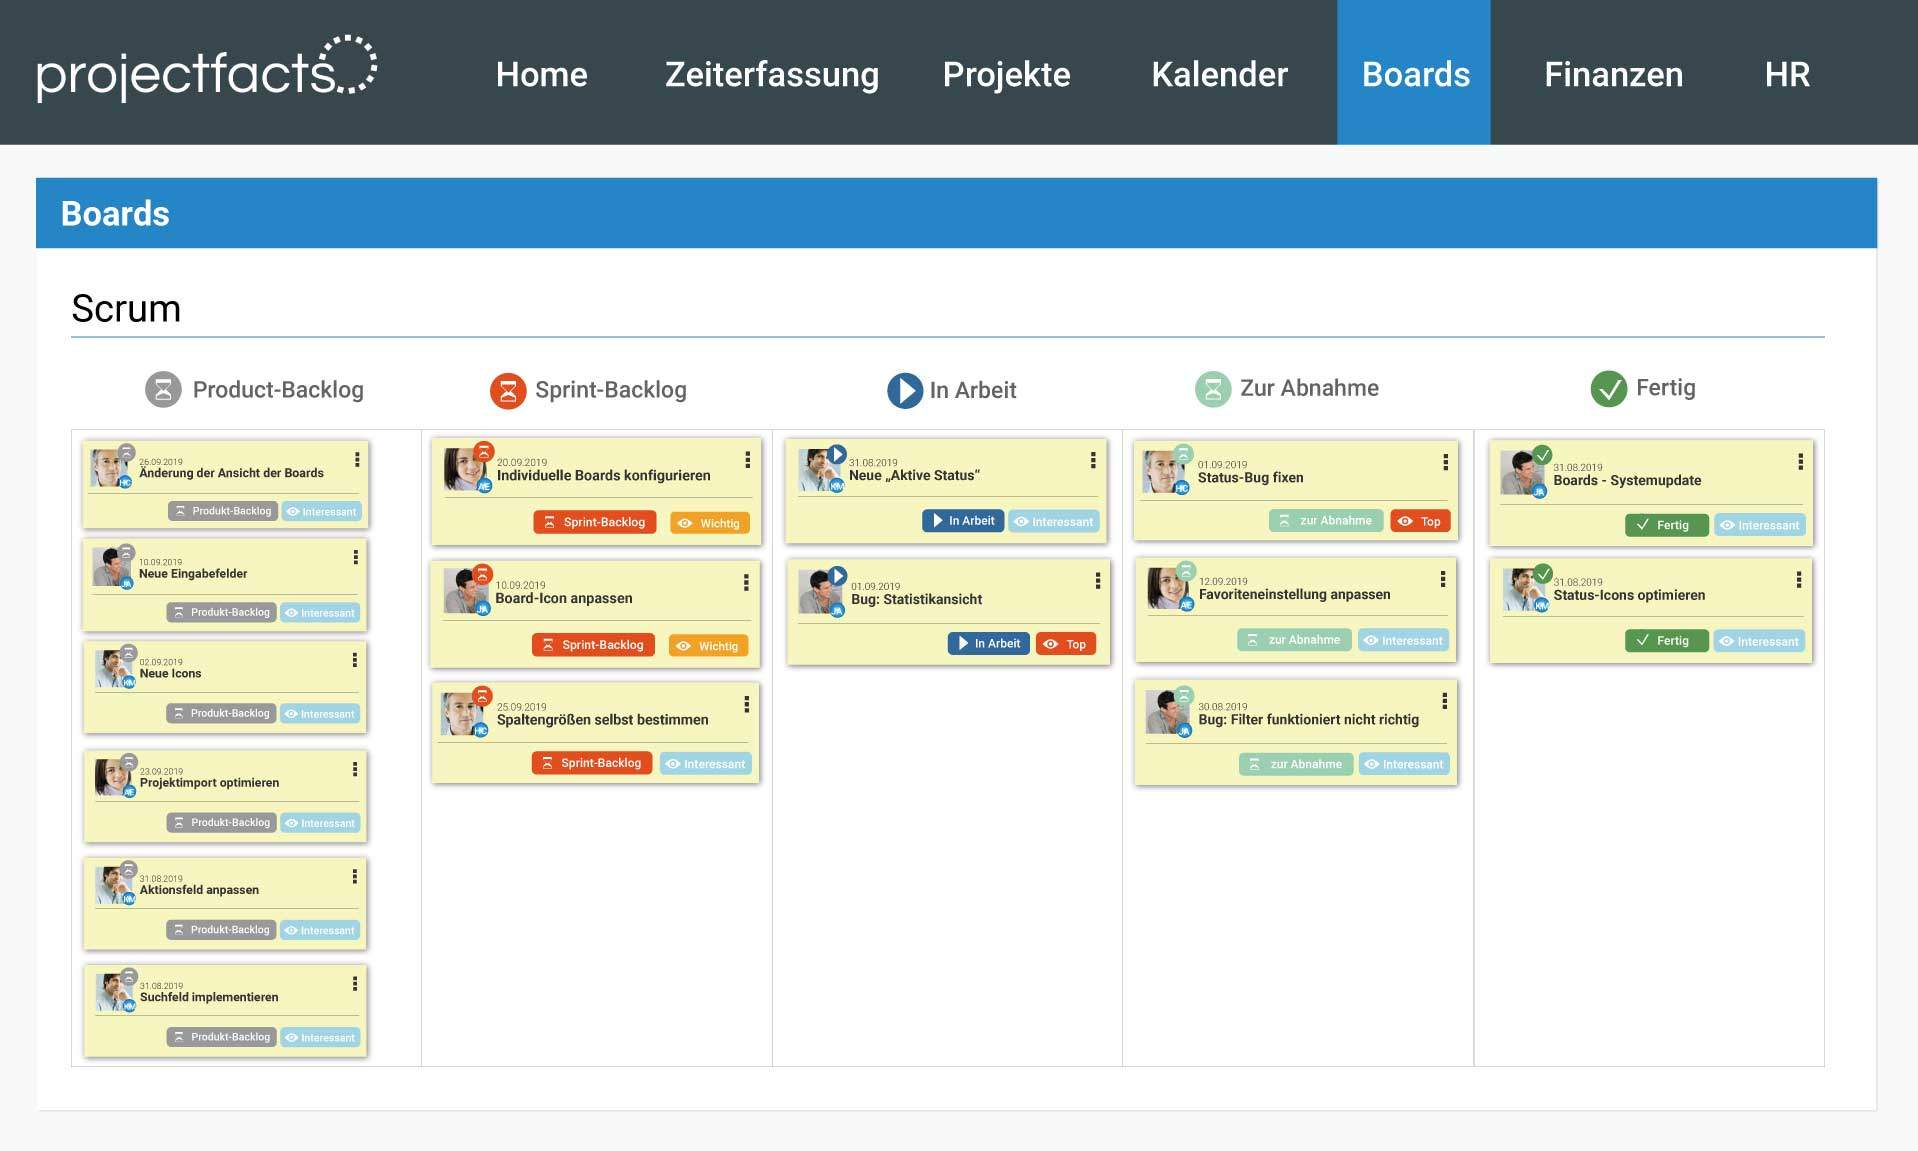 Scrum Board in projectfacts